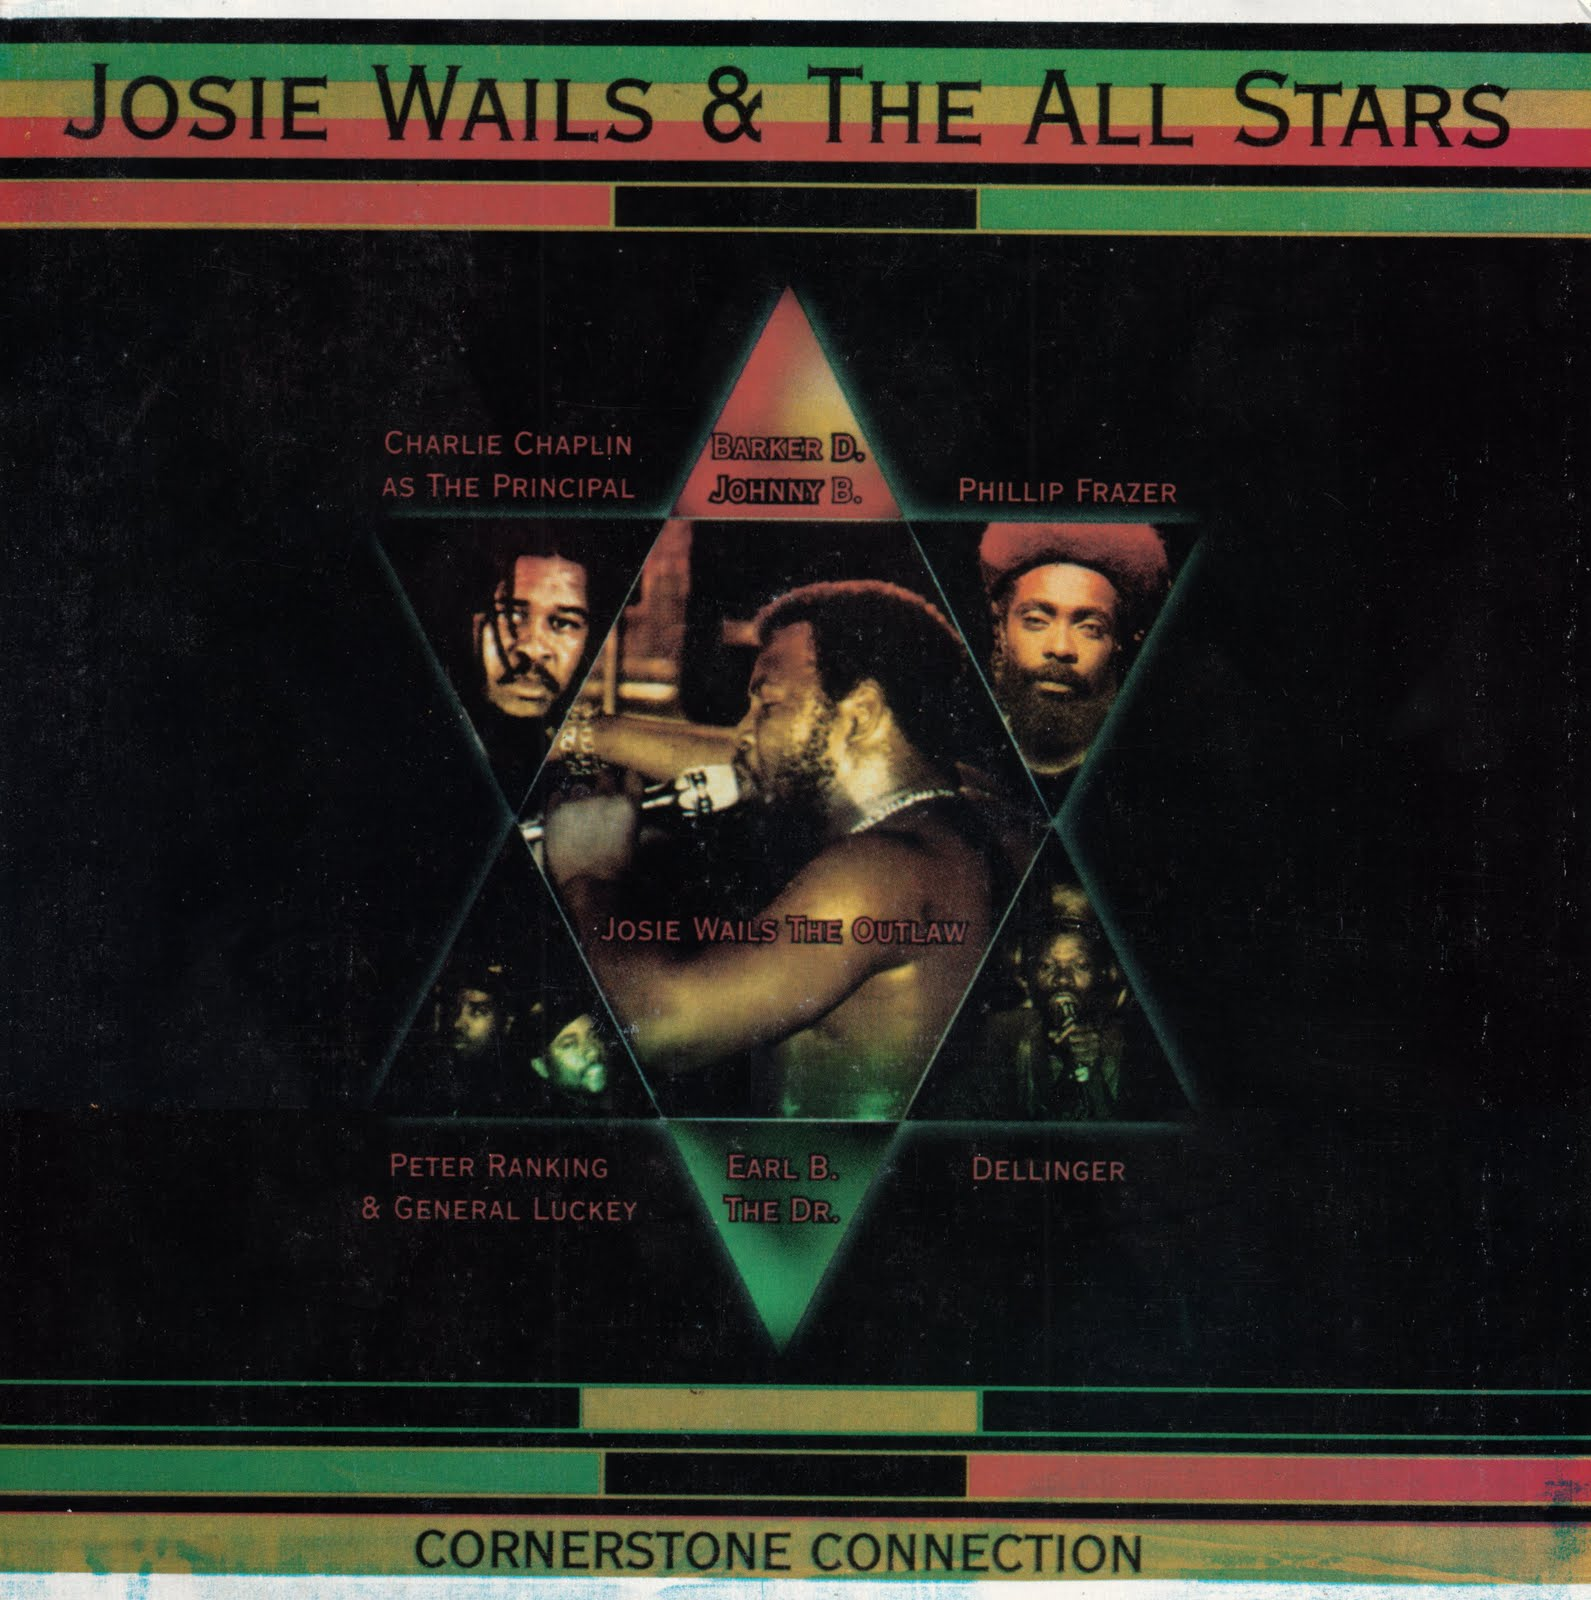 Josey Wales & The All Stars - Cornerstone Connection (Cornerstone)198x